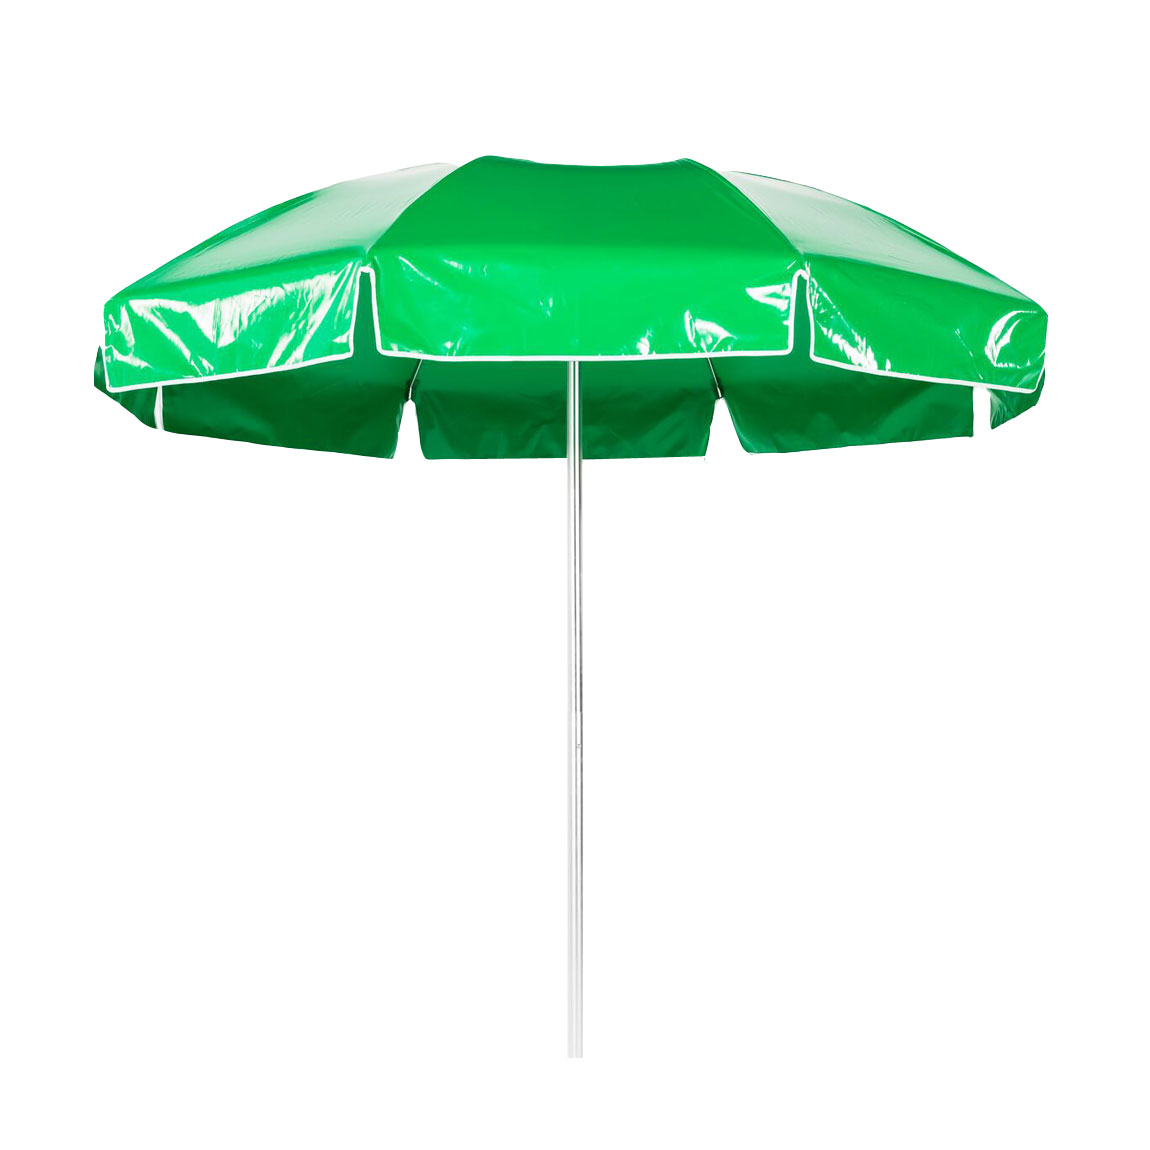 7 5 Ft Commercial Grade Steel Patio Umbrella